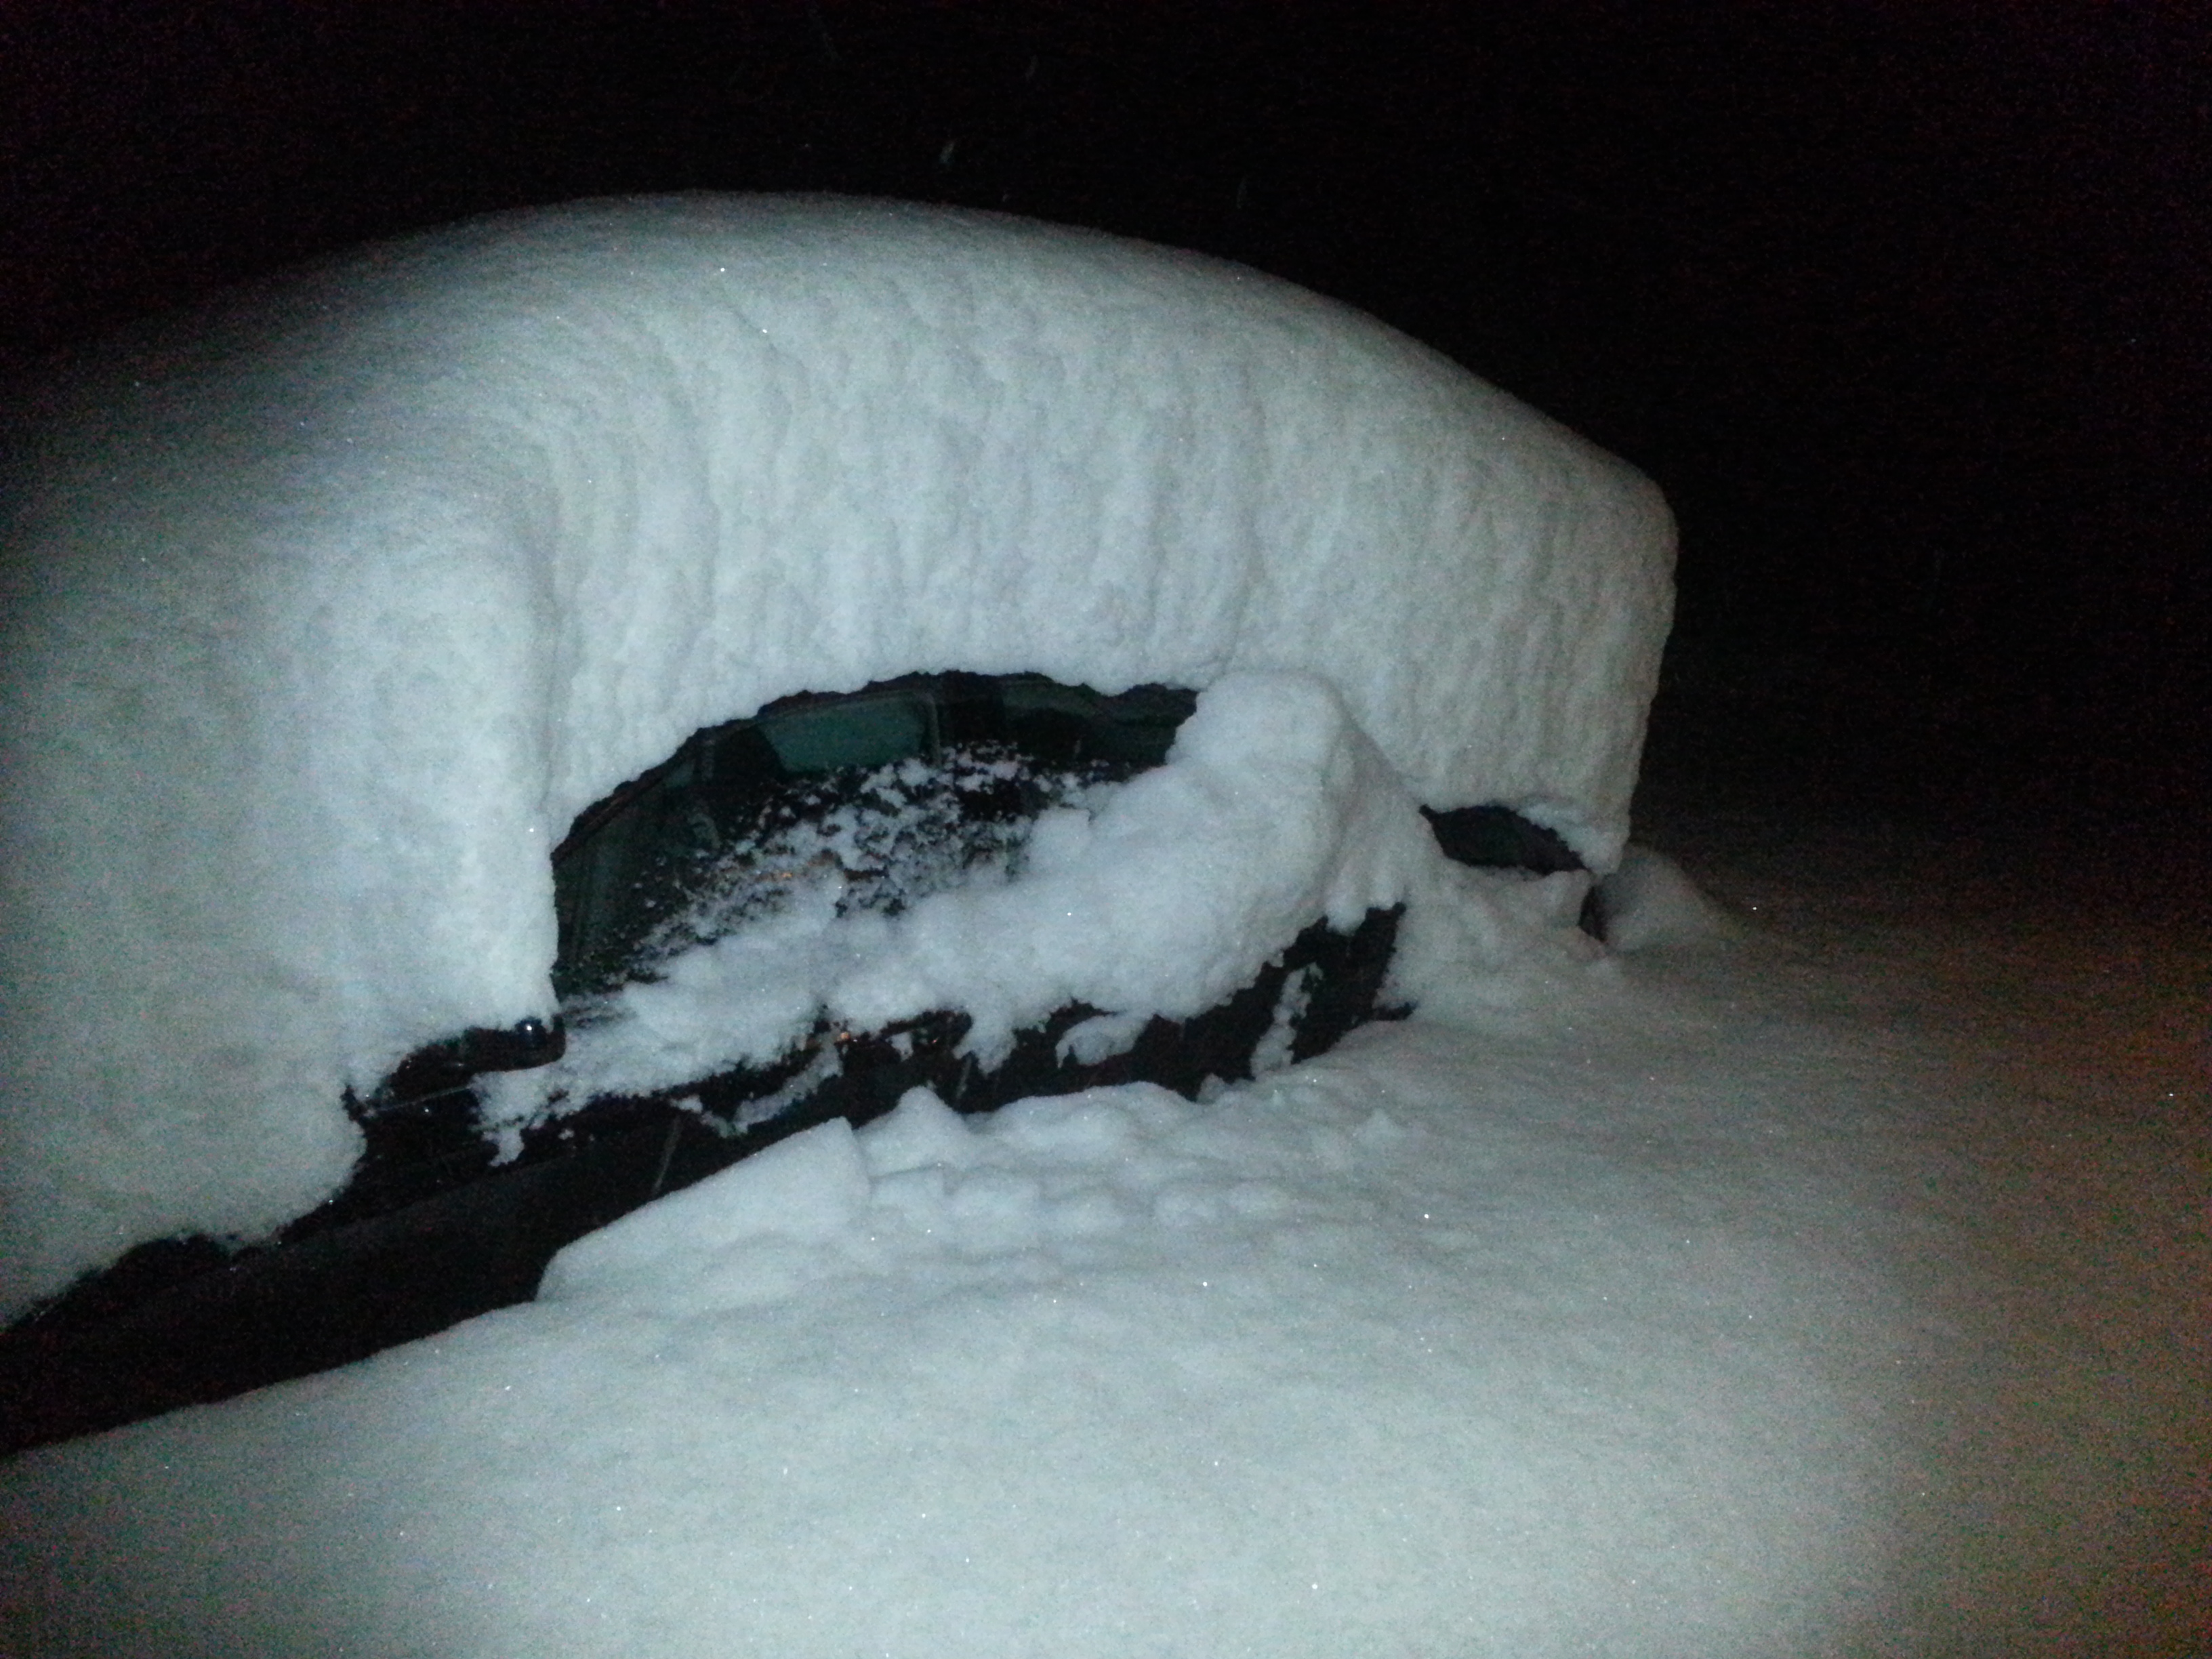 A snow-covered car in Kittredge after 2 feet of snow fell overnight during an April storm. (credit: Kerry Maloney)